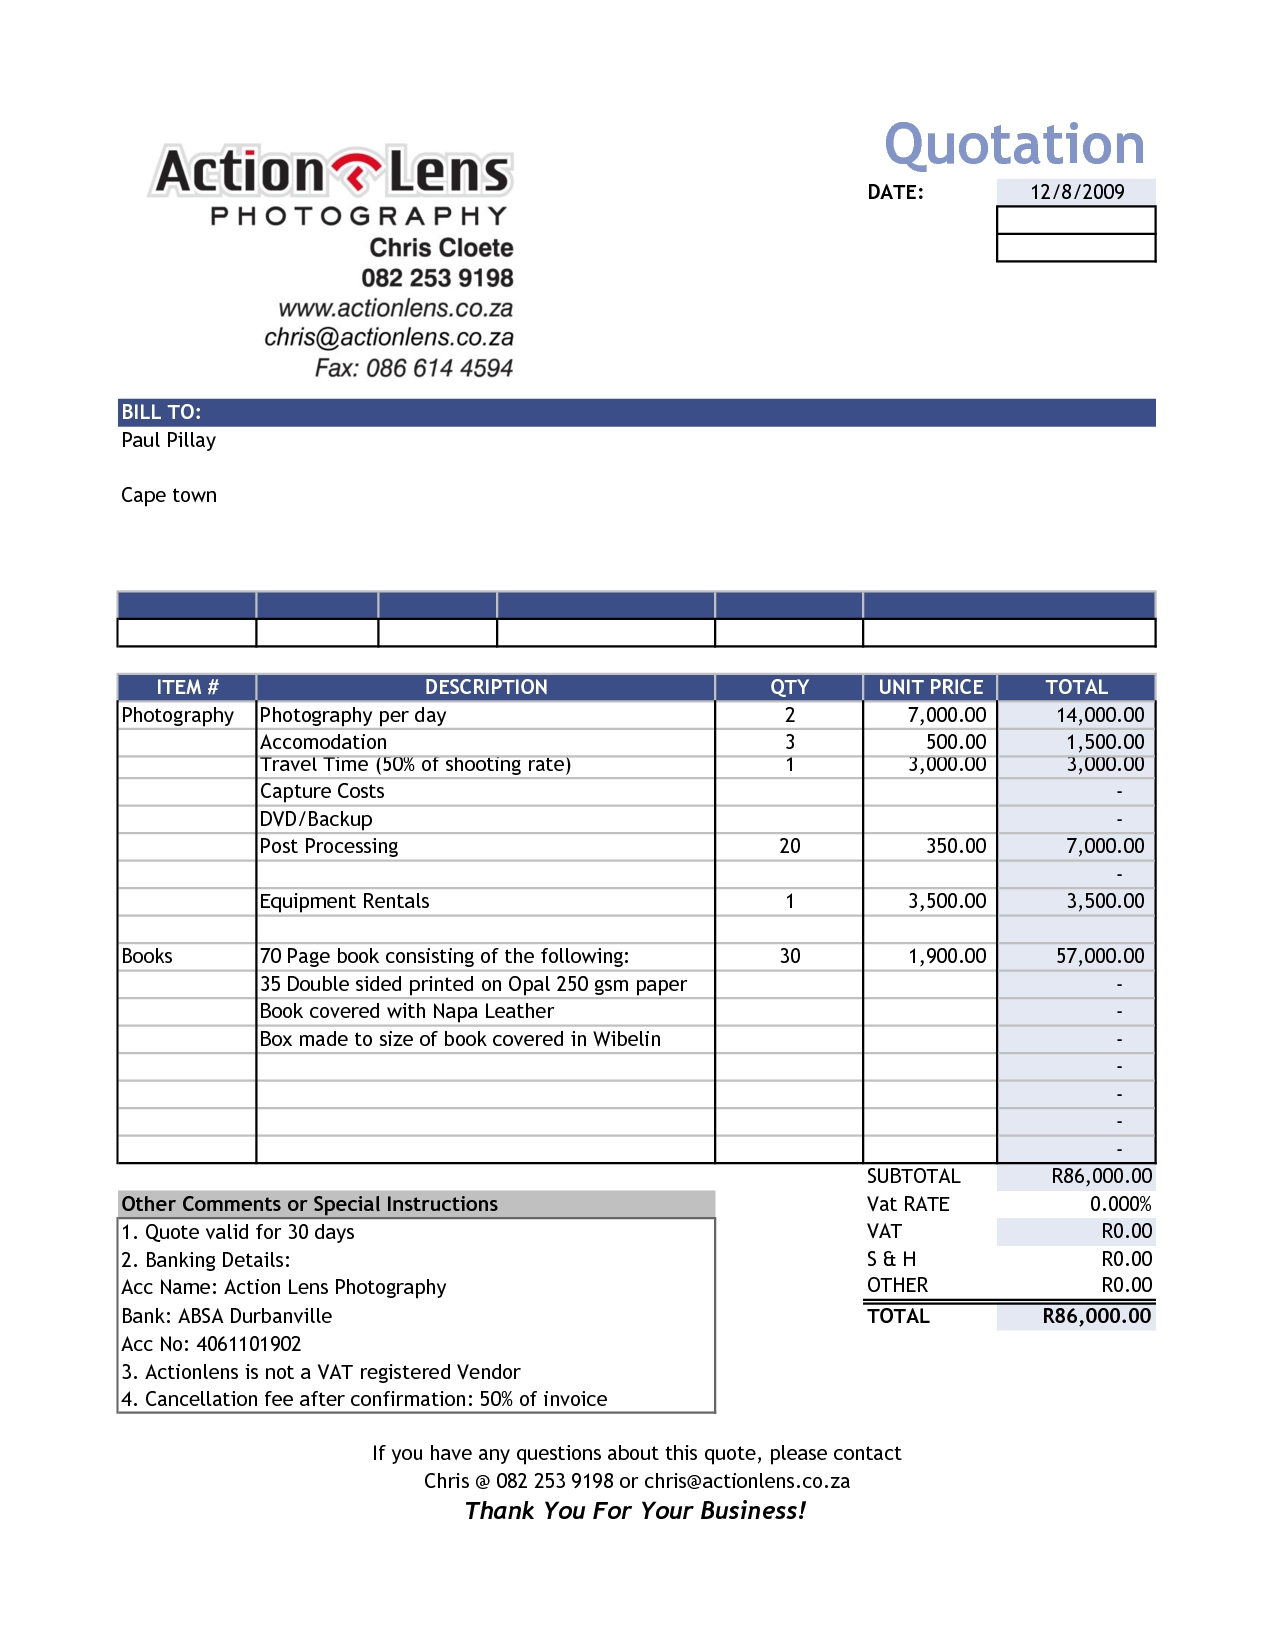 sales invoice template excel sales invoice template invoice sales invoice excel